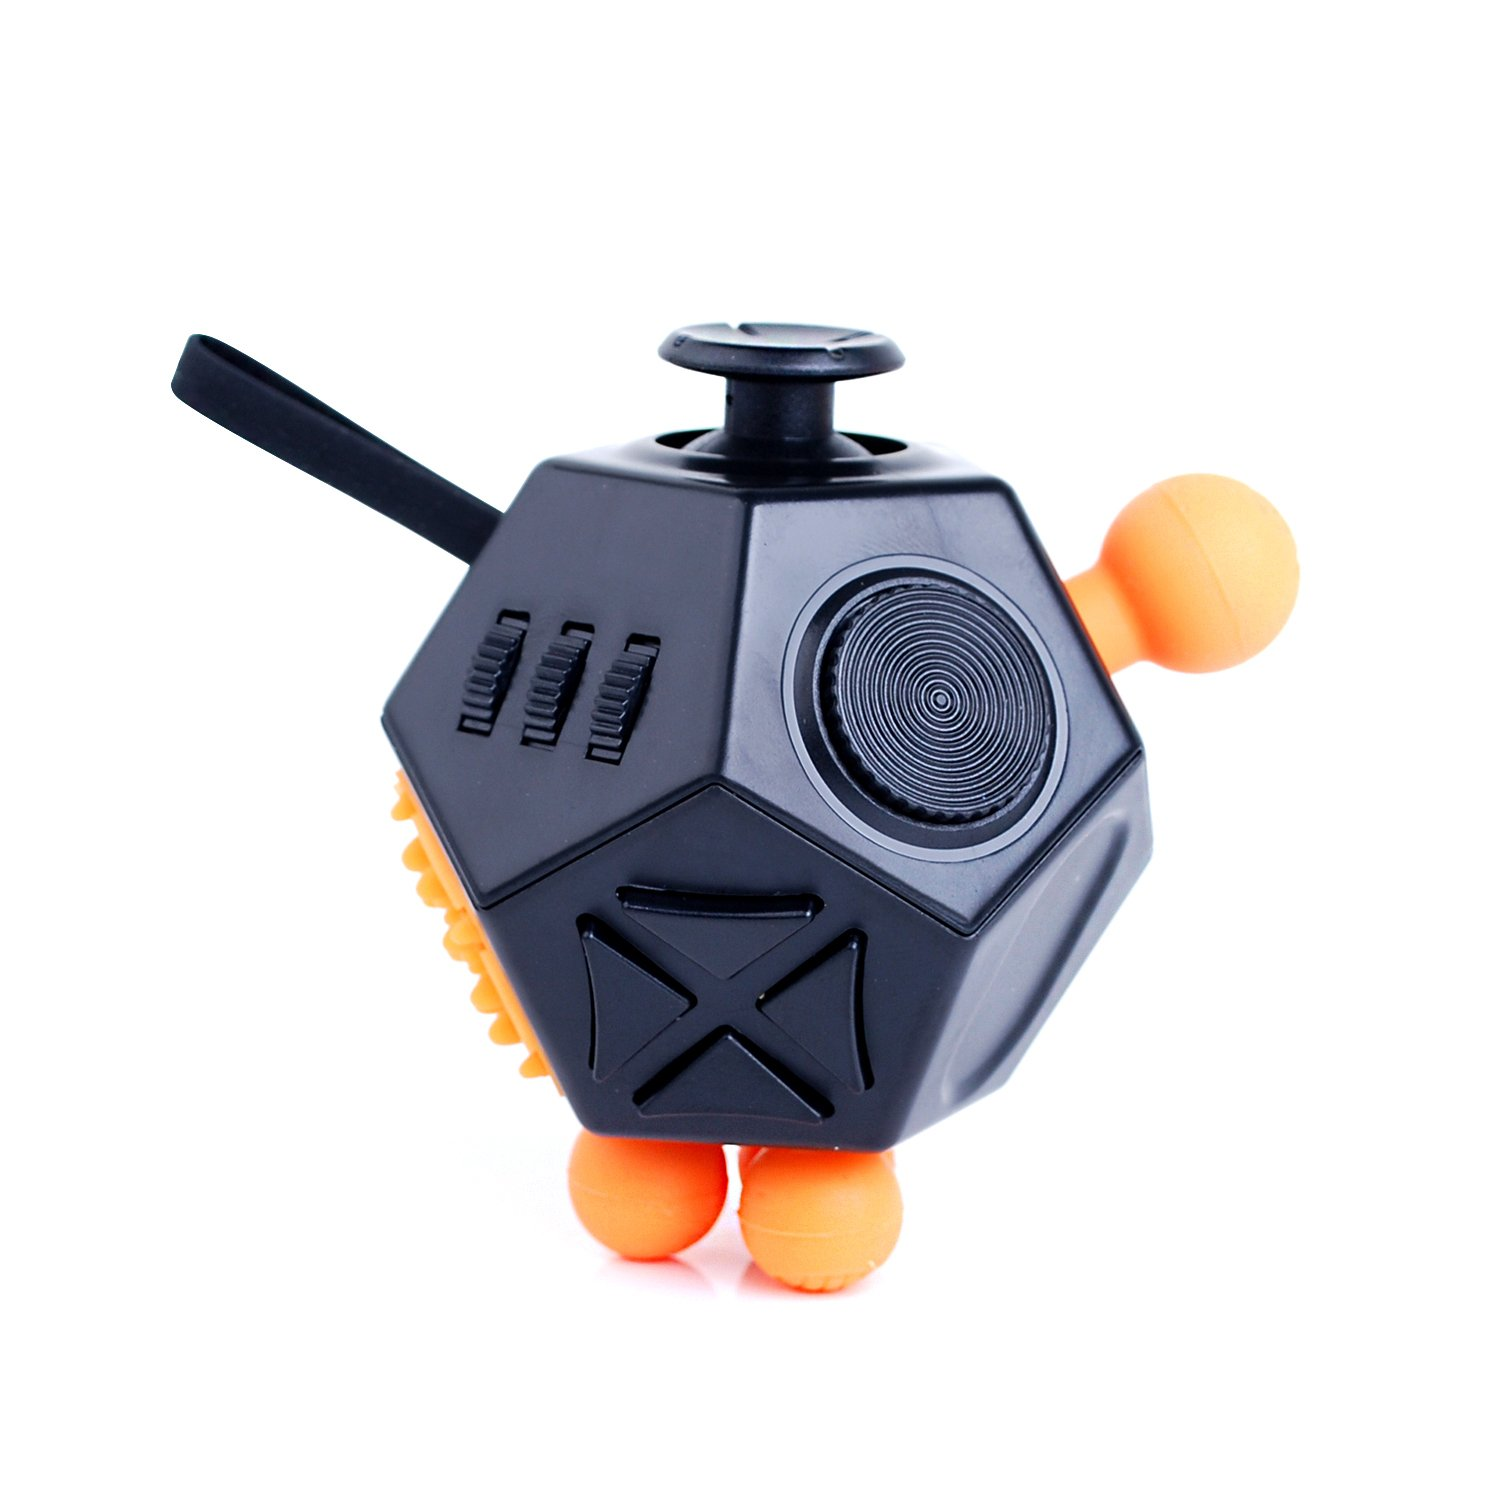 Fidget Cube Toys, Relieves Stress and Increases Focus for Adults and Children with ADHD ADD OCD Autism - 12 Sides Fidget Dice Relieves Stress and Increases Focus for Adults and Children with ADHD ADD OCD Autism - 12 Sides Fidget Dice (Black) BSL